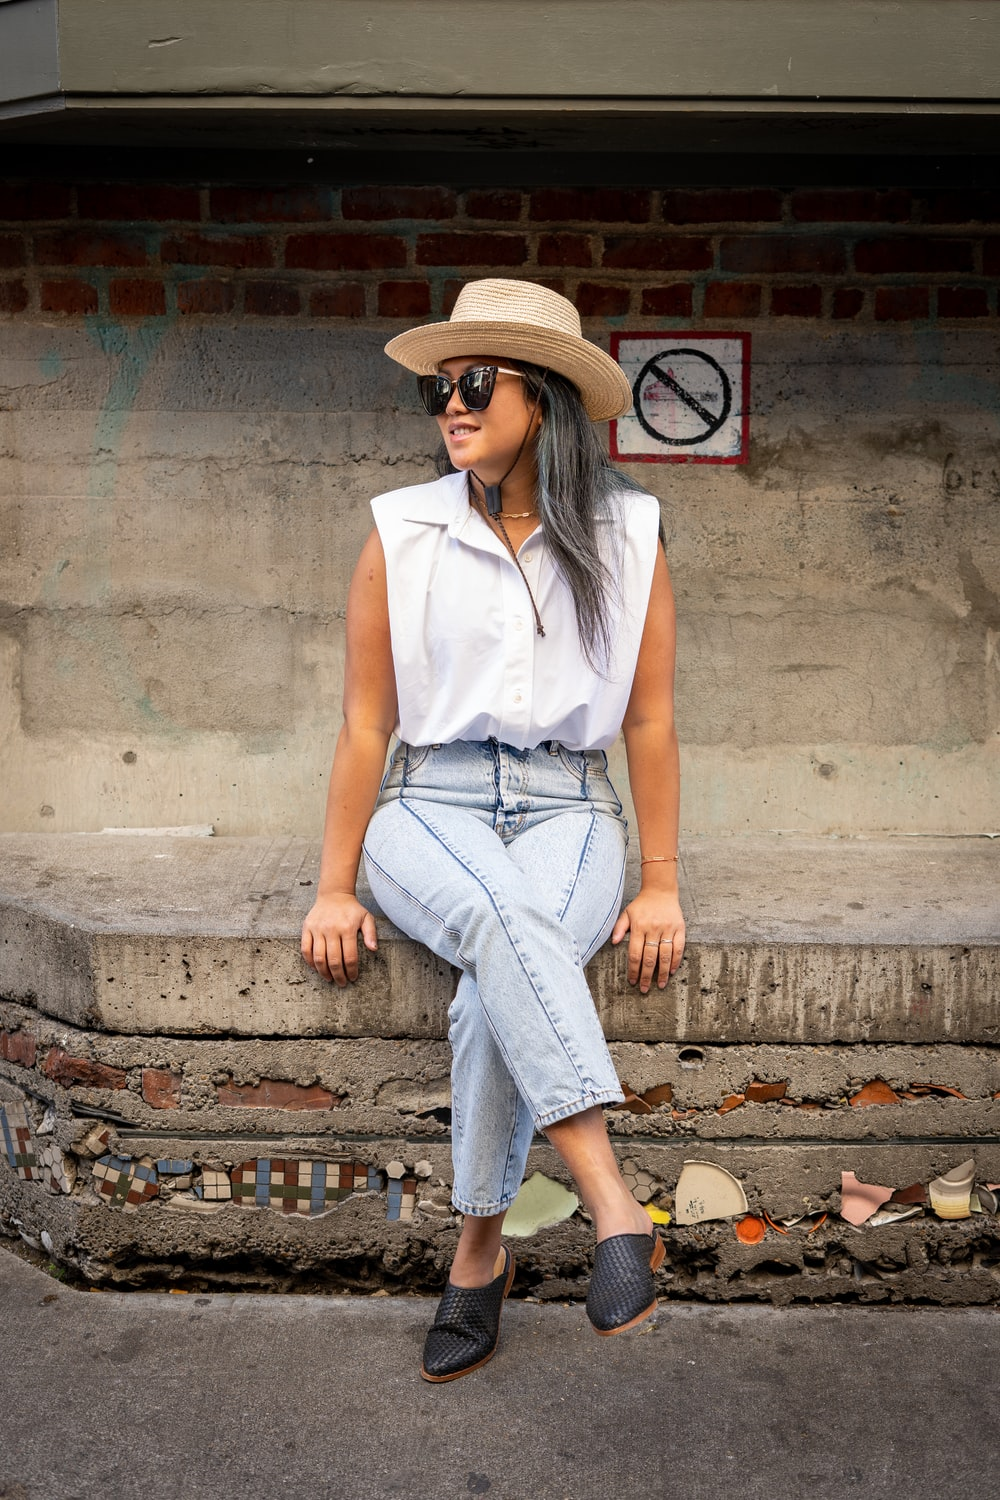 woman in white sleeveless shirt and blue denim jeans sitting on concrete stairs